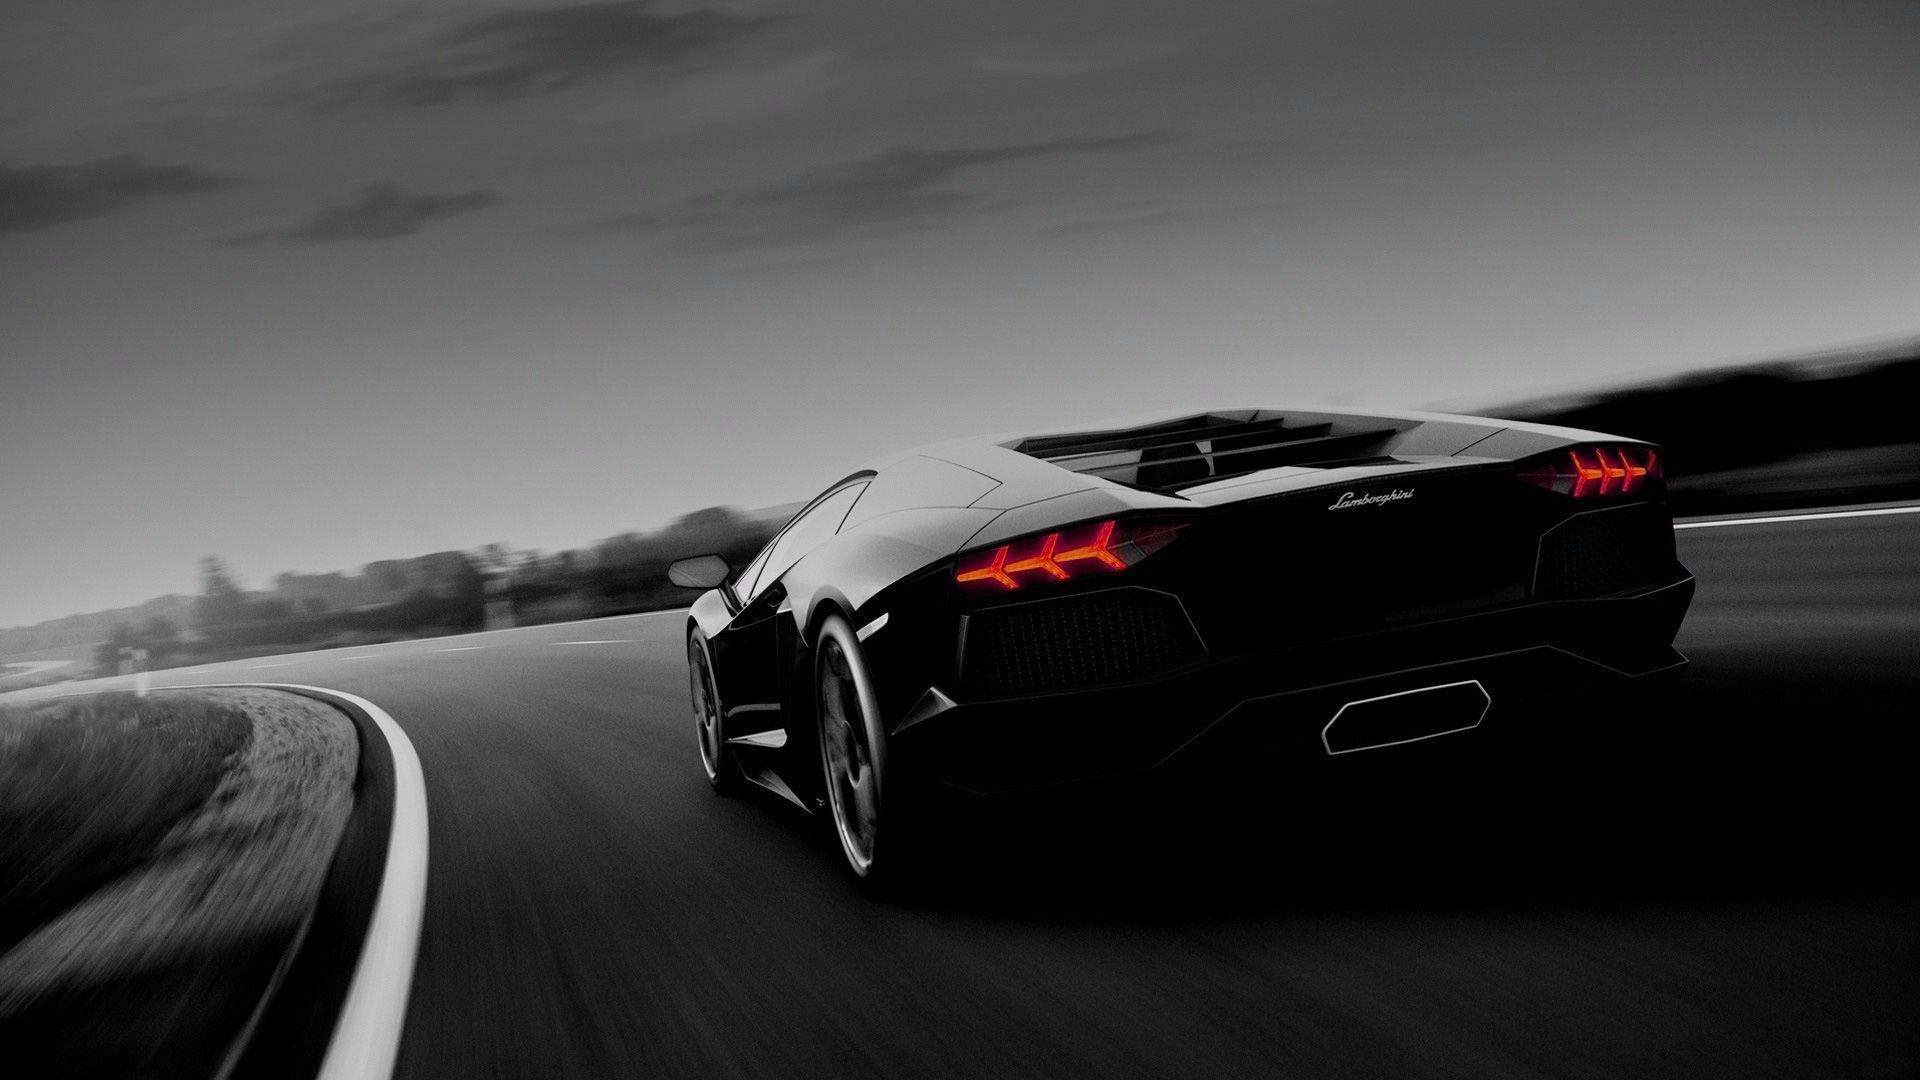 Black Lamborghini Wallpaper 72 Images